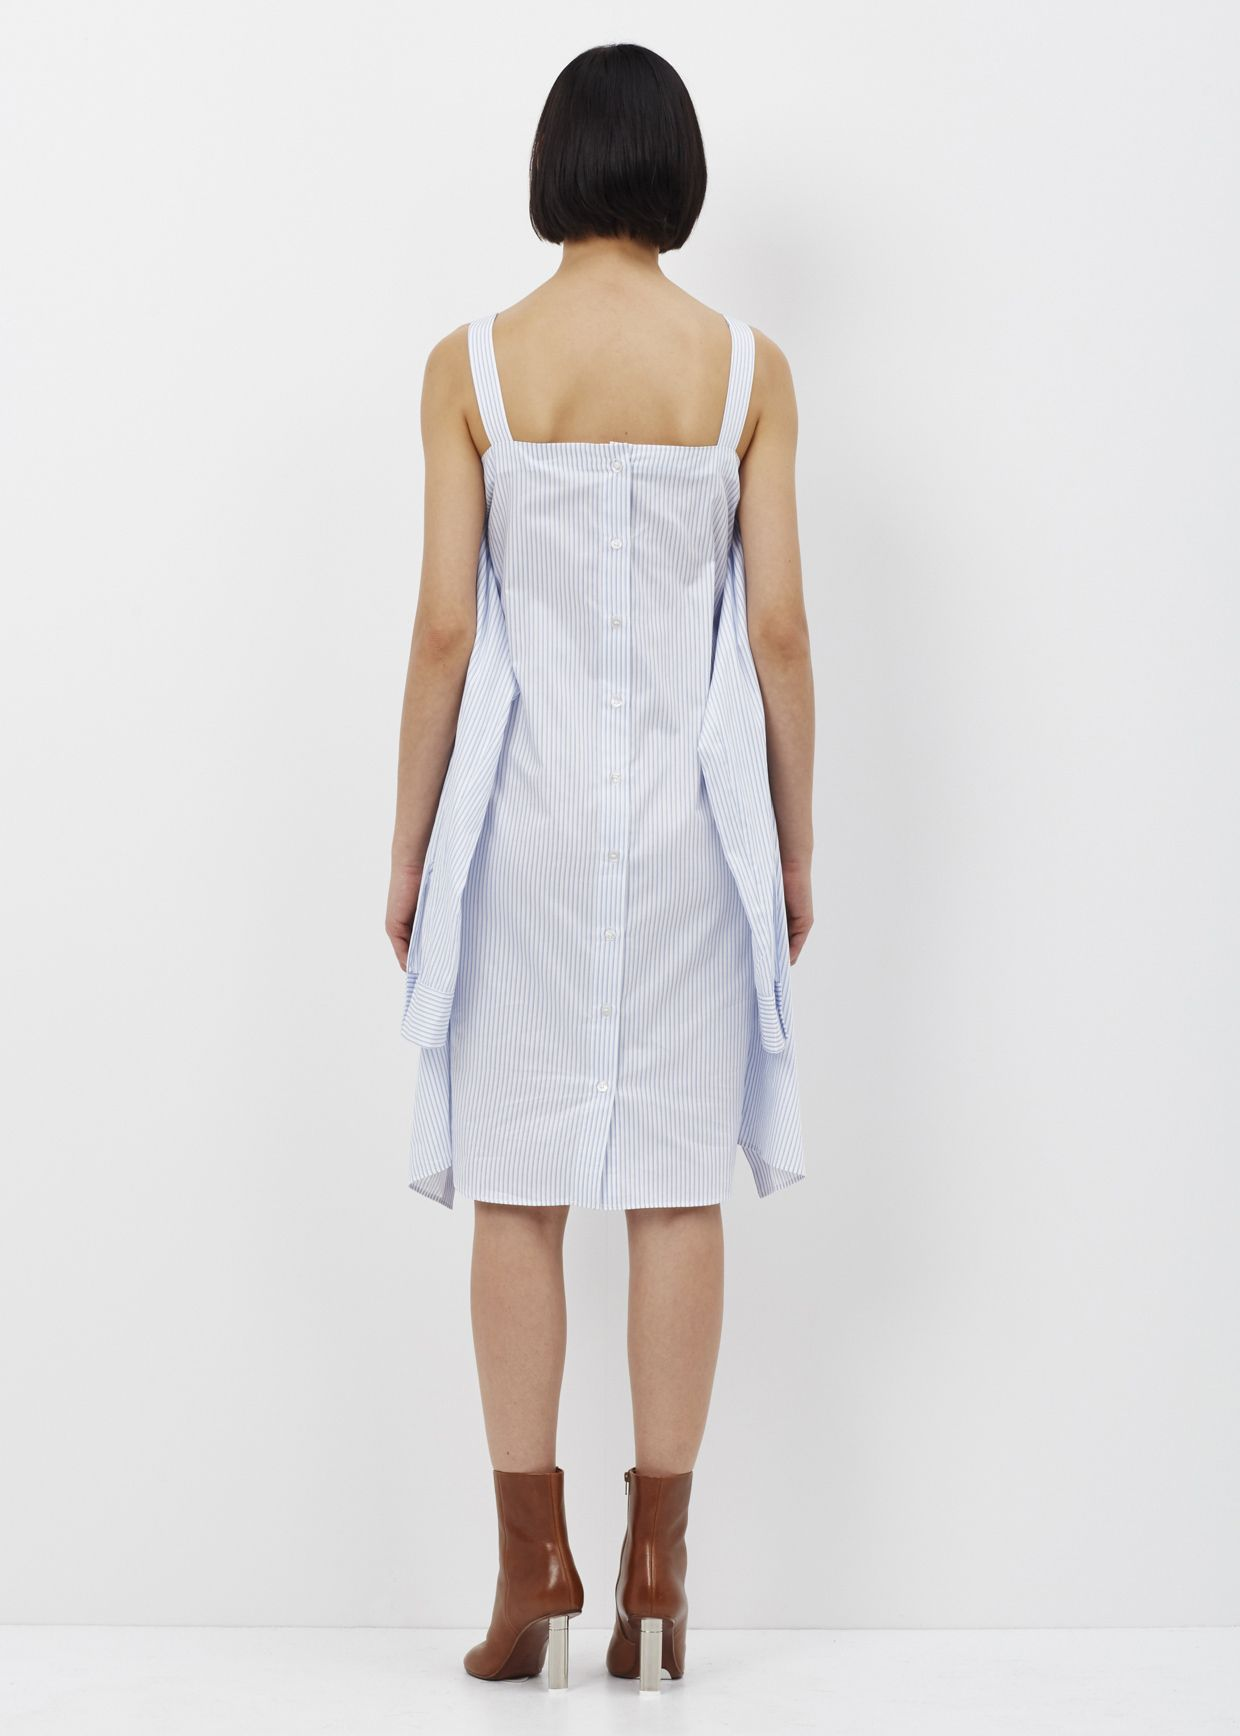 Long-bodied button down with front-shirt panel at back with shoulder strap details. Vented sleeve with button closure. Rounded body hem. Dry clean only.